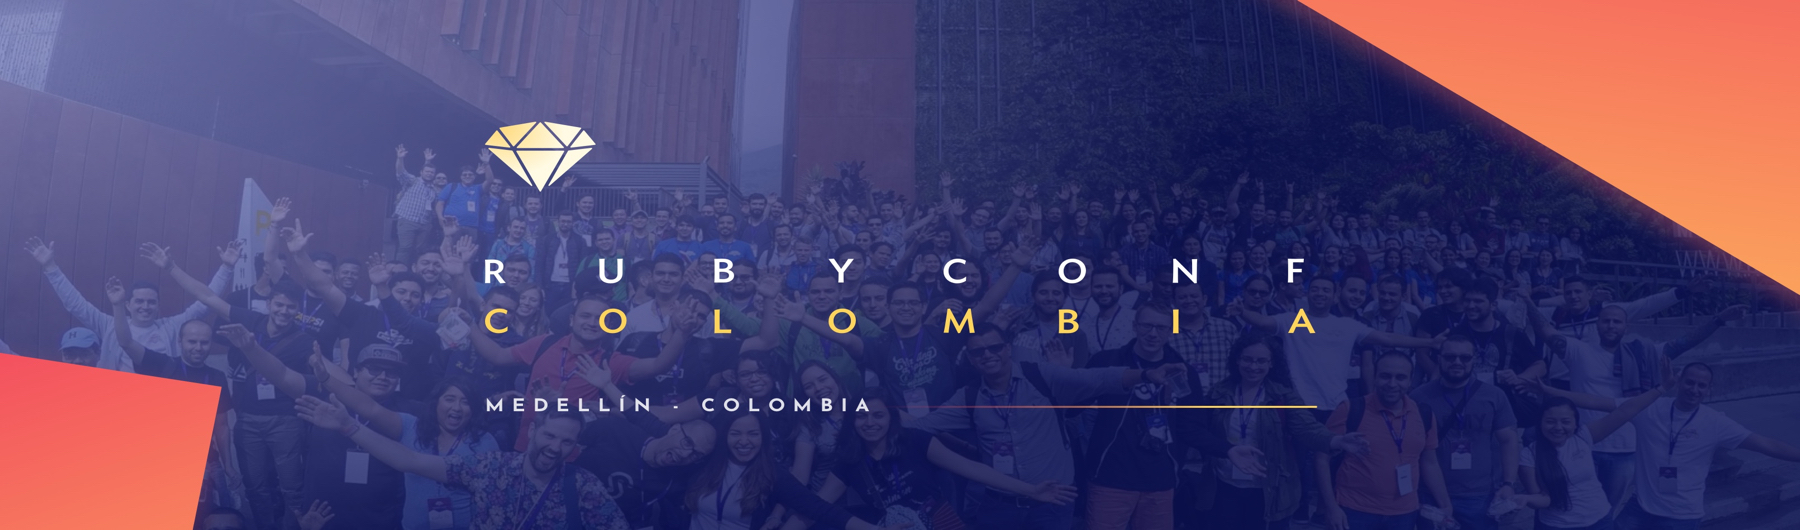 RubyConf Colombia 2019